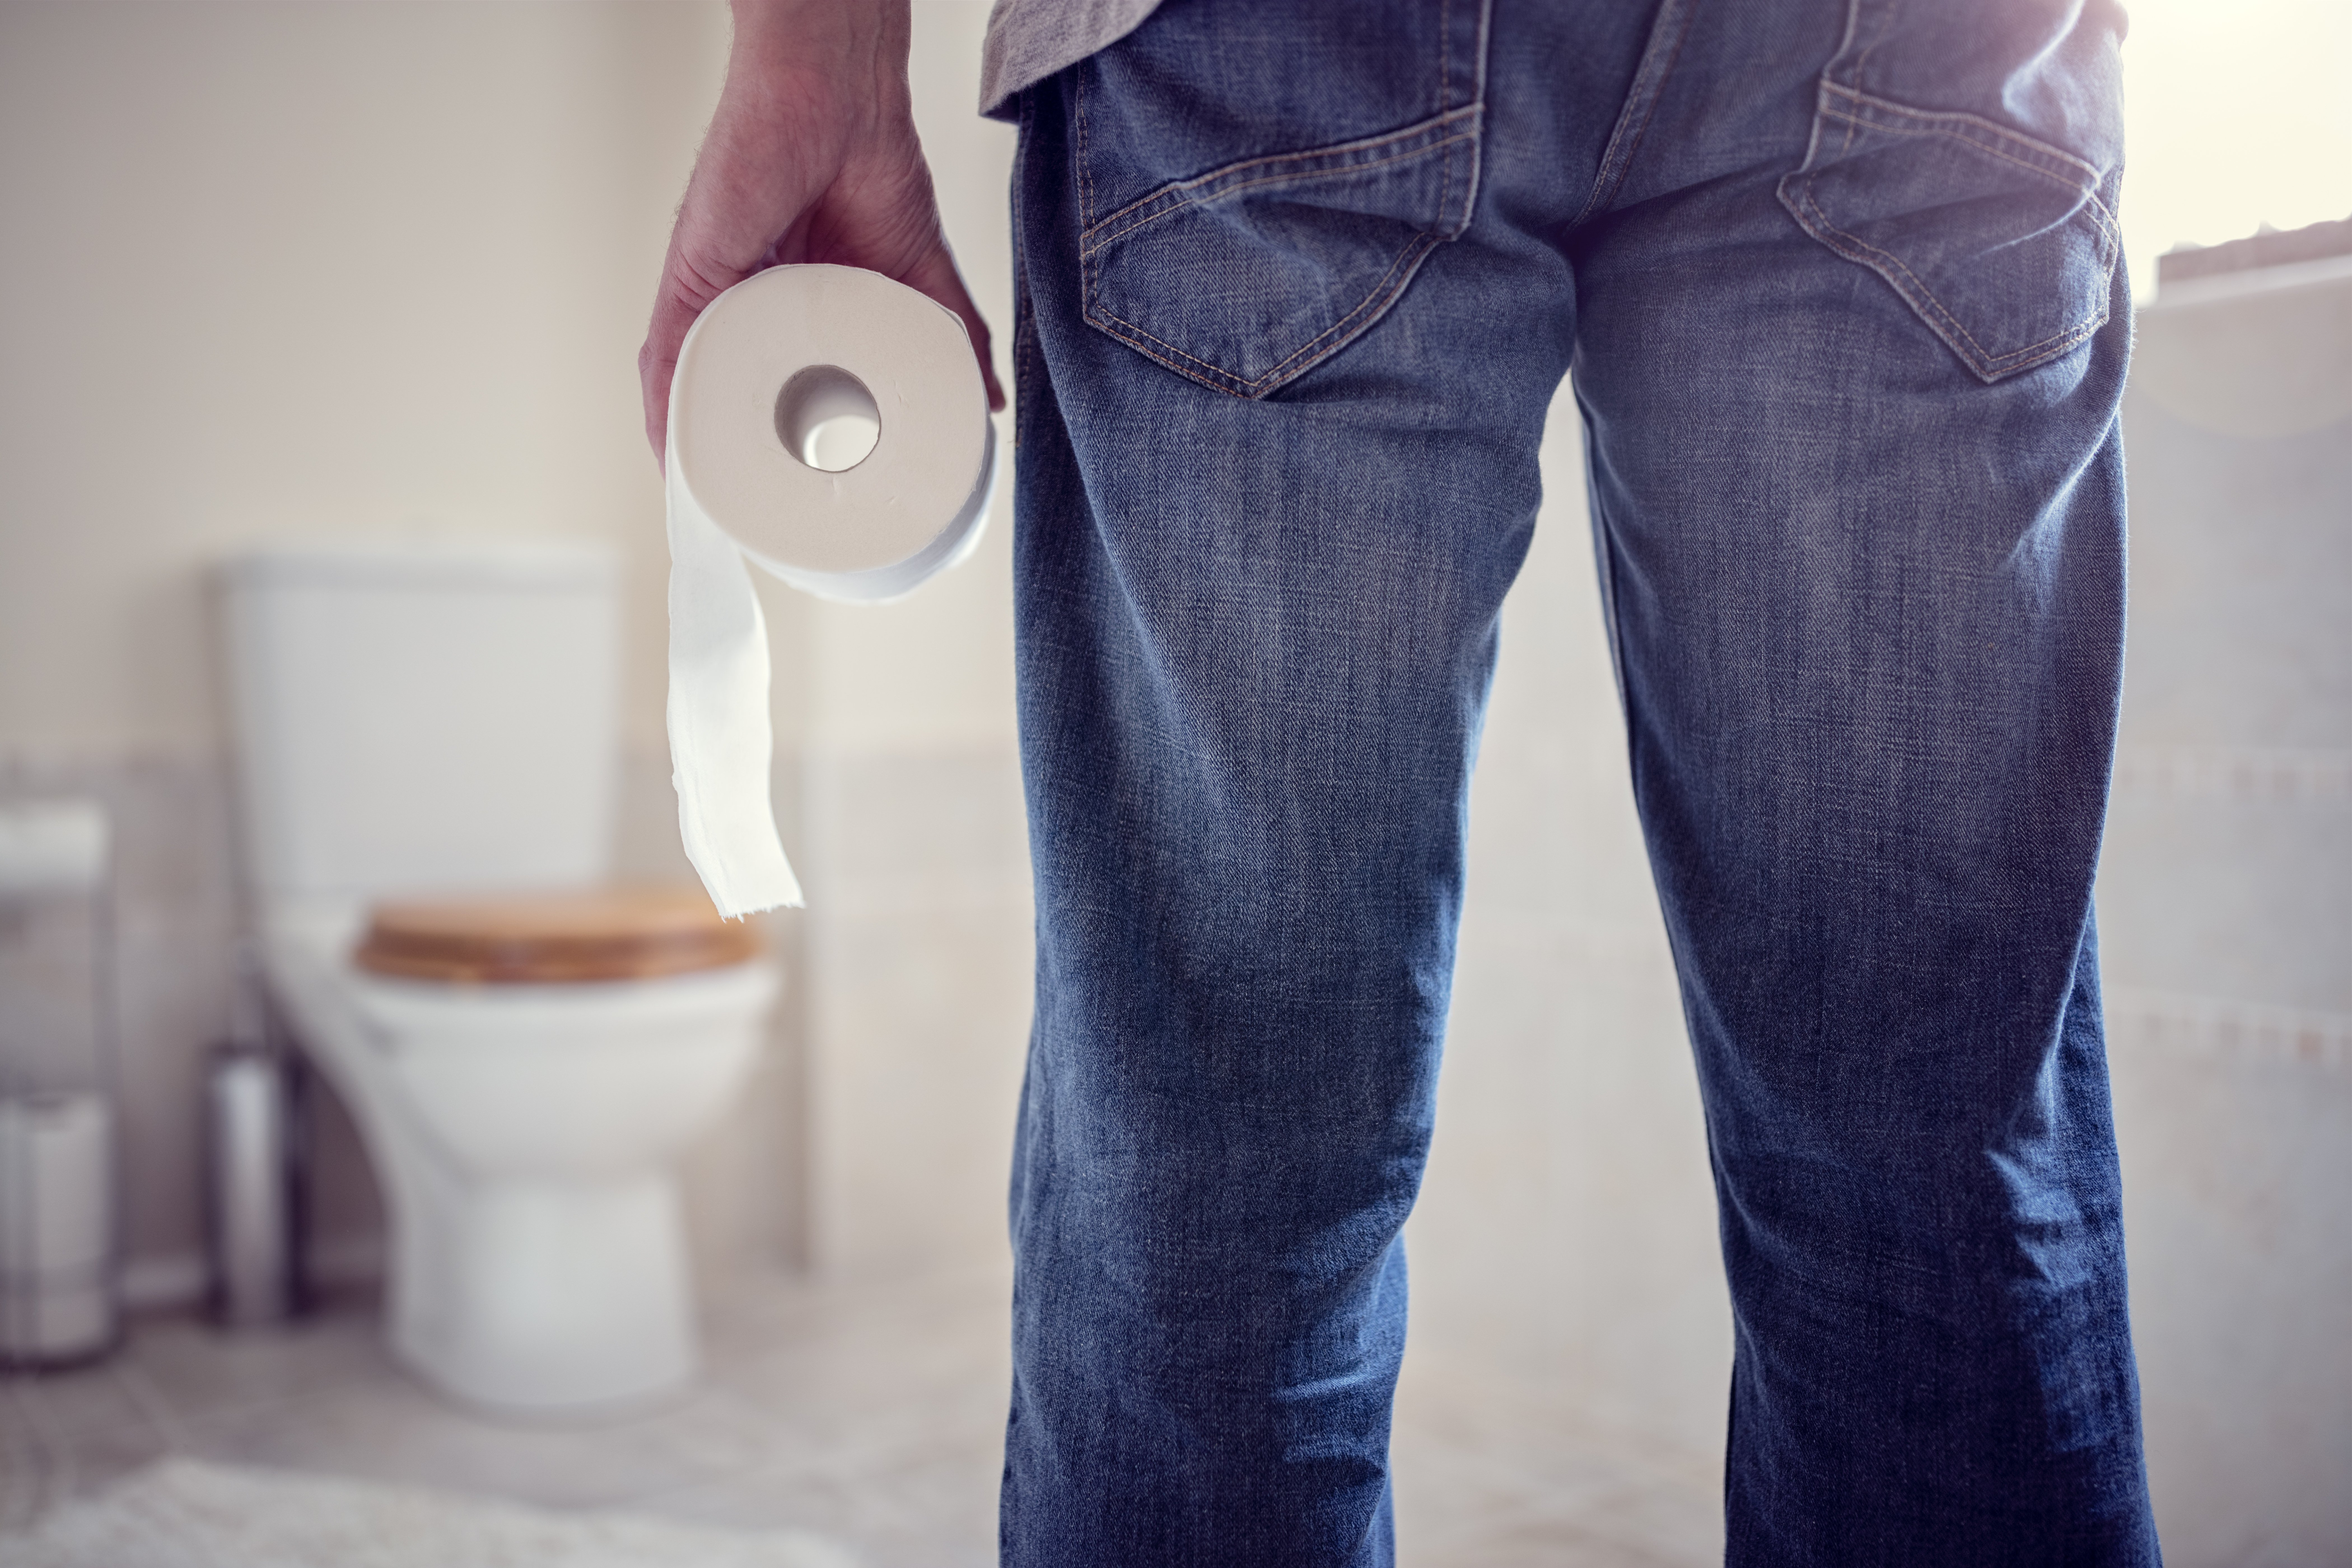 Man standing in front of a toilet with a roll of toilet paper in hand   Source: Shutterstock